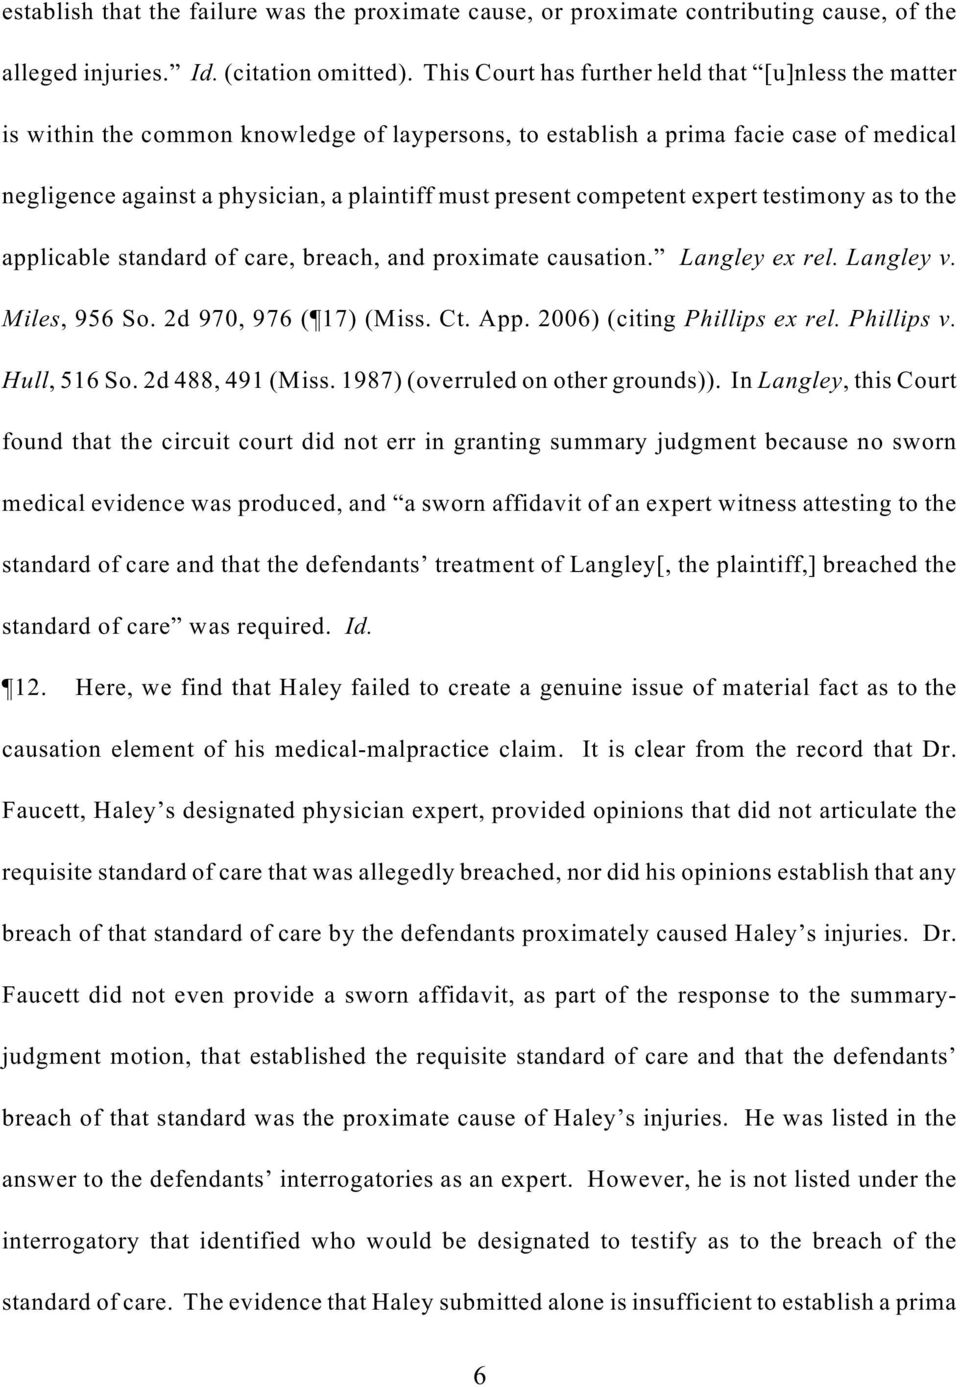 competent expert testimony as to the applicable standard of care, breach, and proximate causation. Langley ex rel. Langley v. Miles, 956 So. 2d 970, 976 ( 17) (Miss. Ct. App.